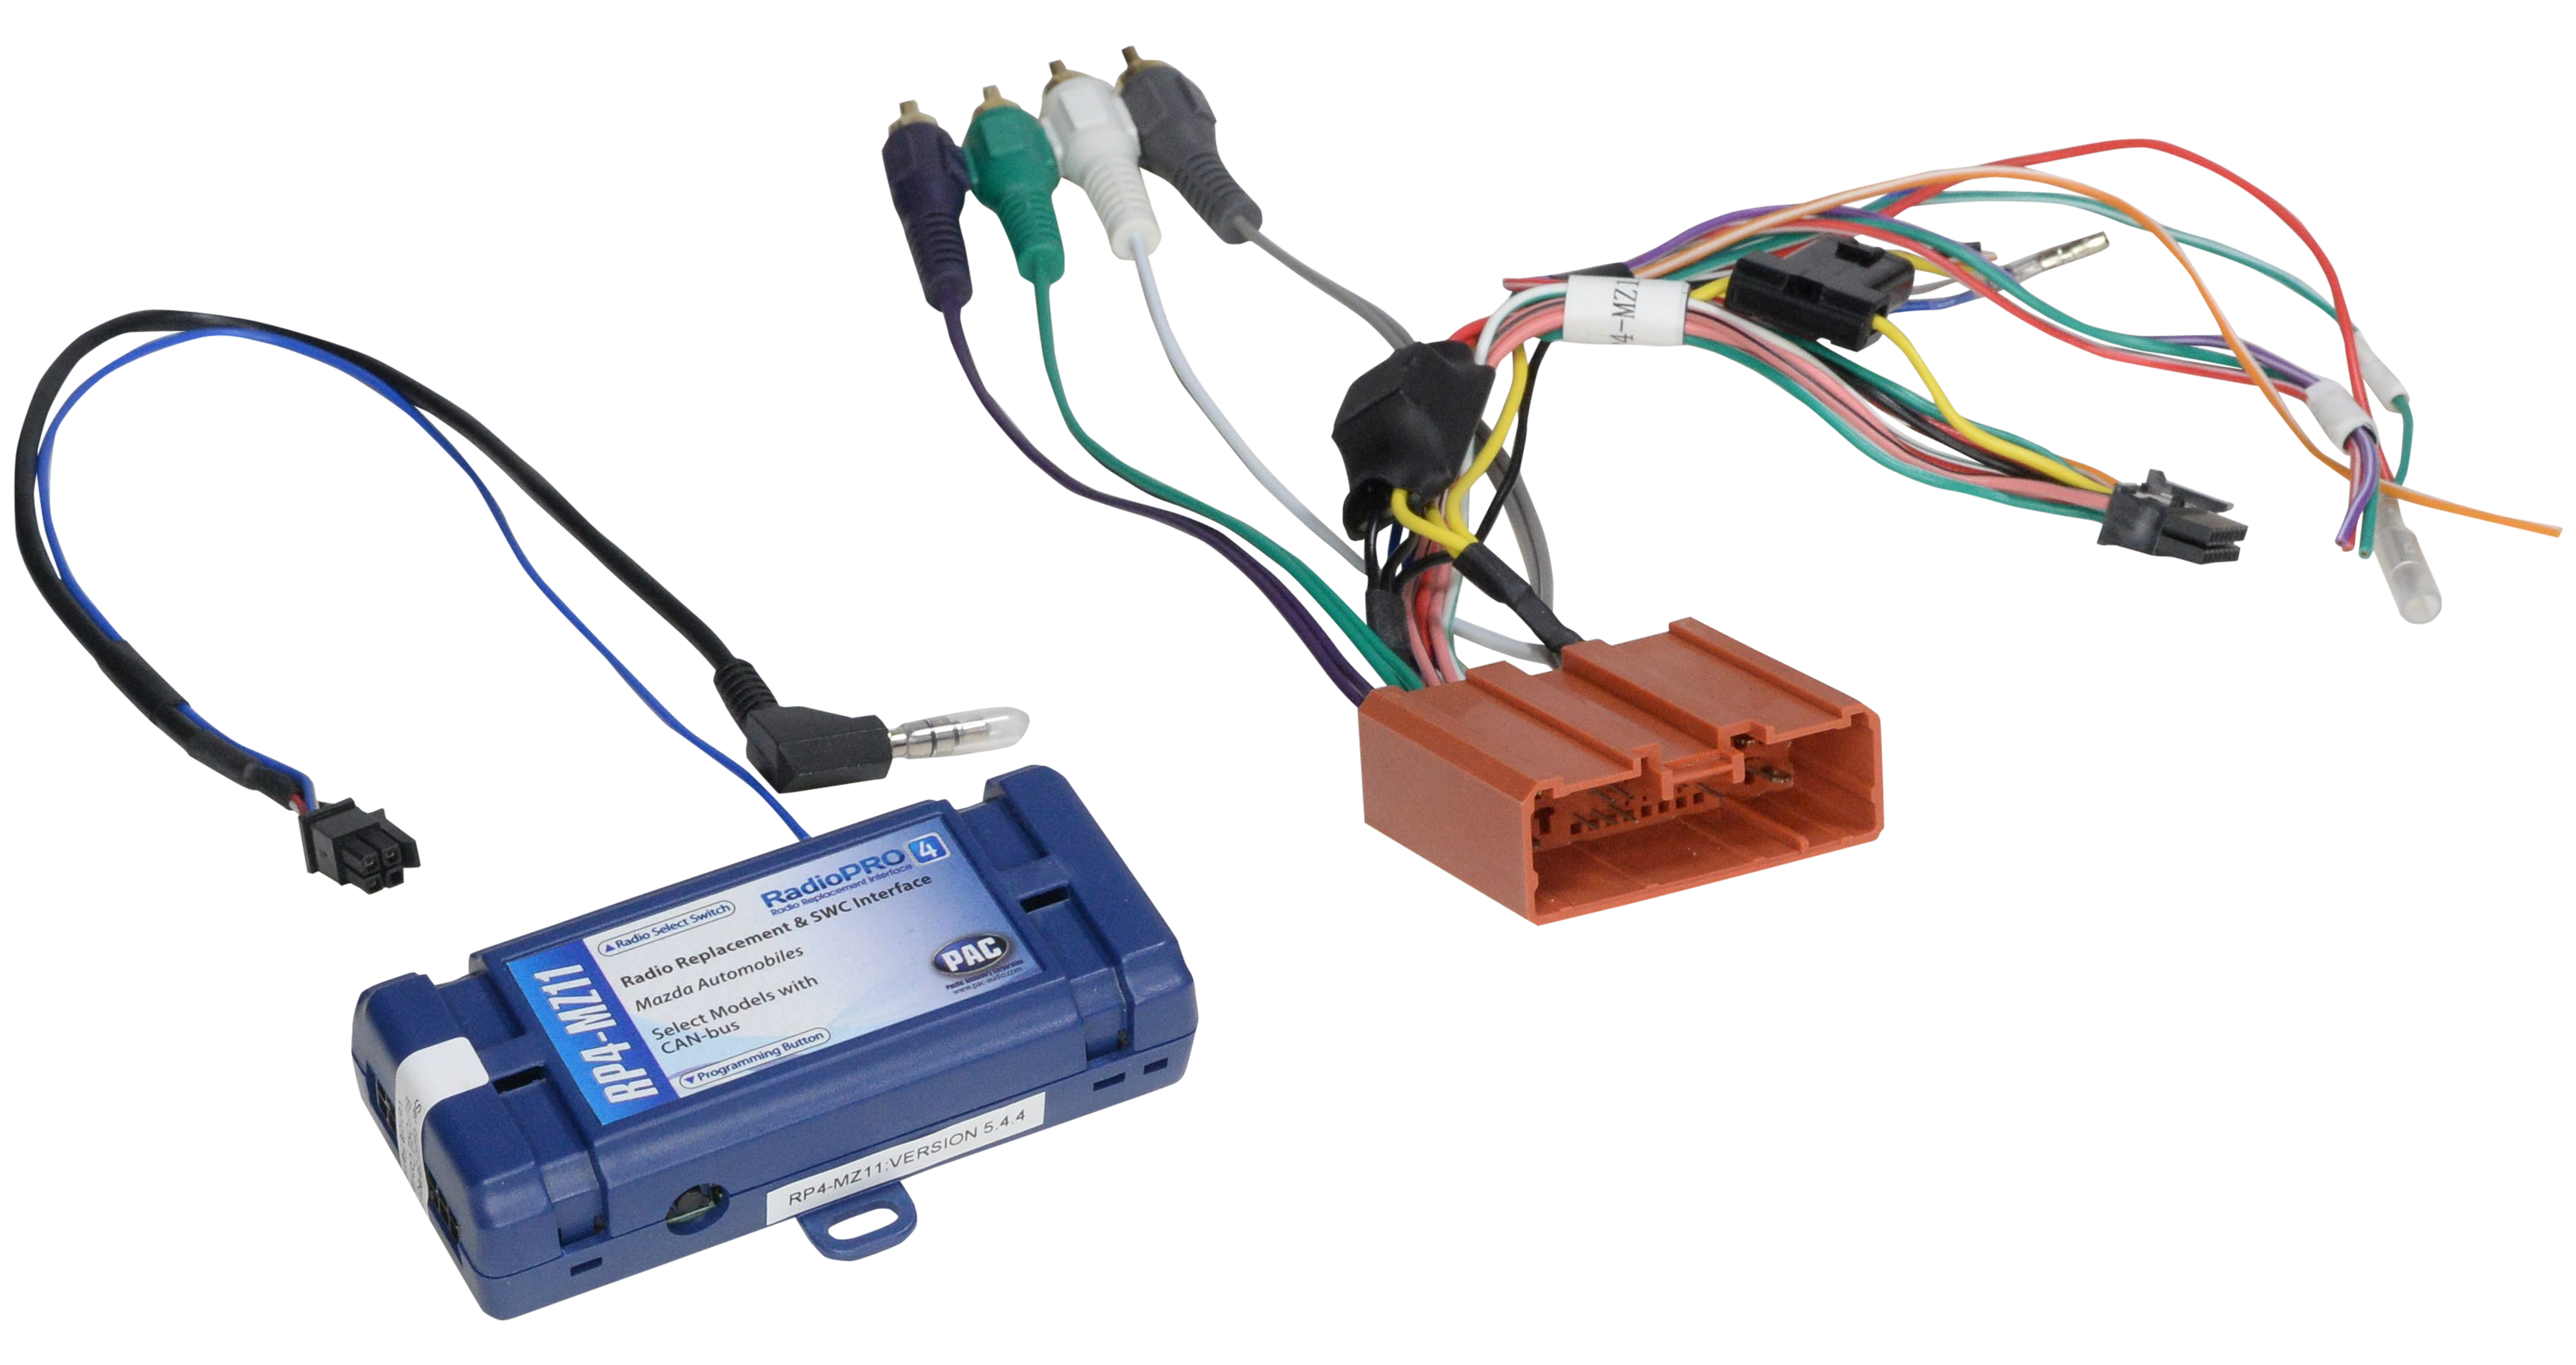 Rt 6563 Car Audio Stereo Head Unit Dash Wiring Harness Wire Cable With Canbus Schematic Wiring